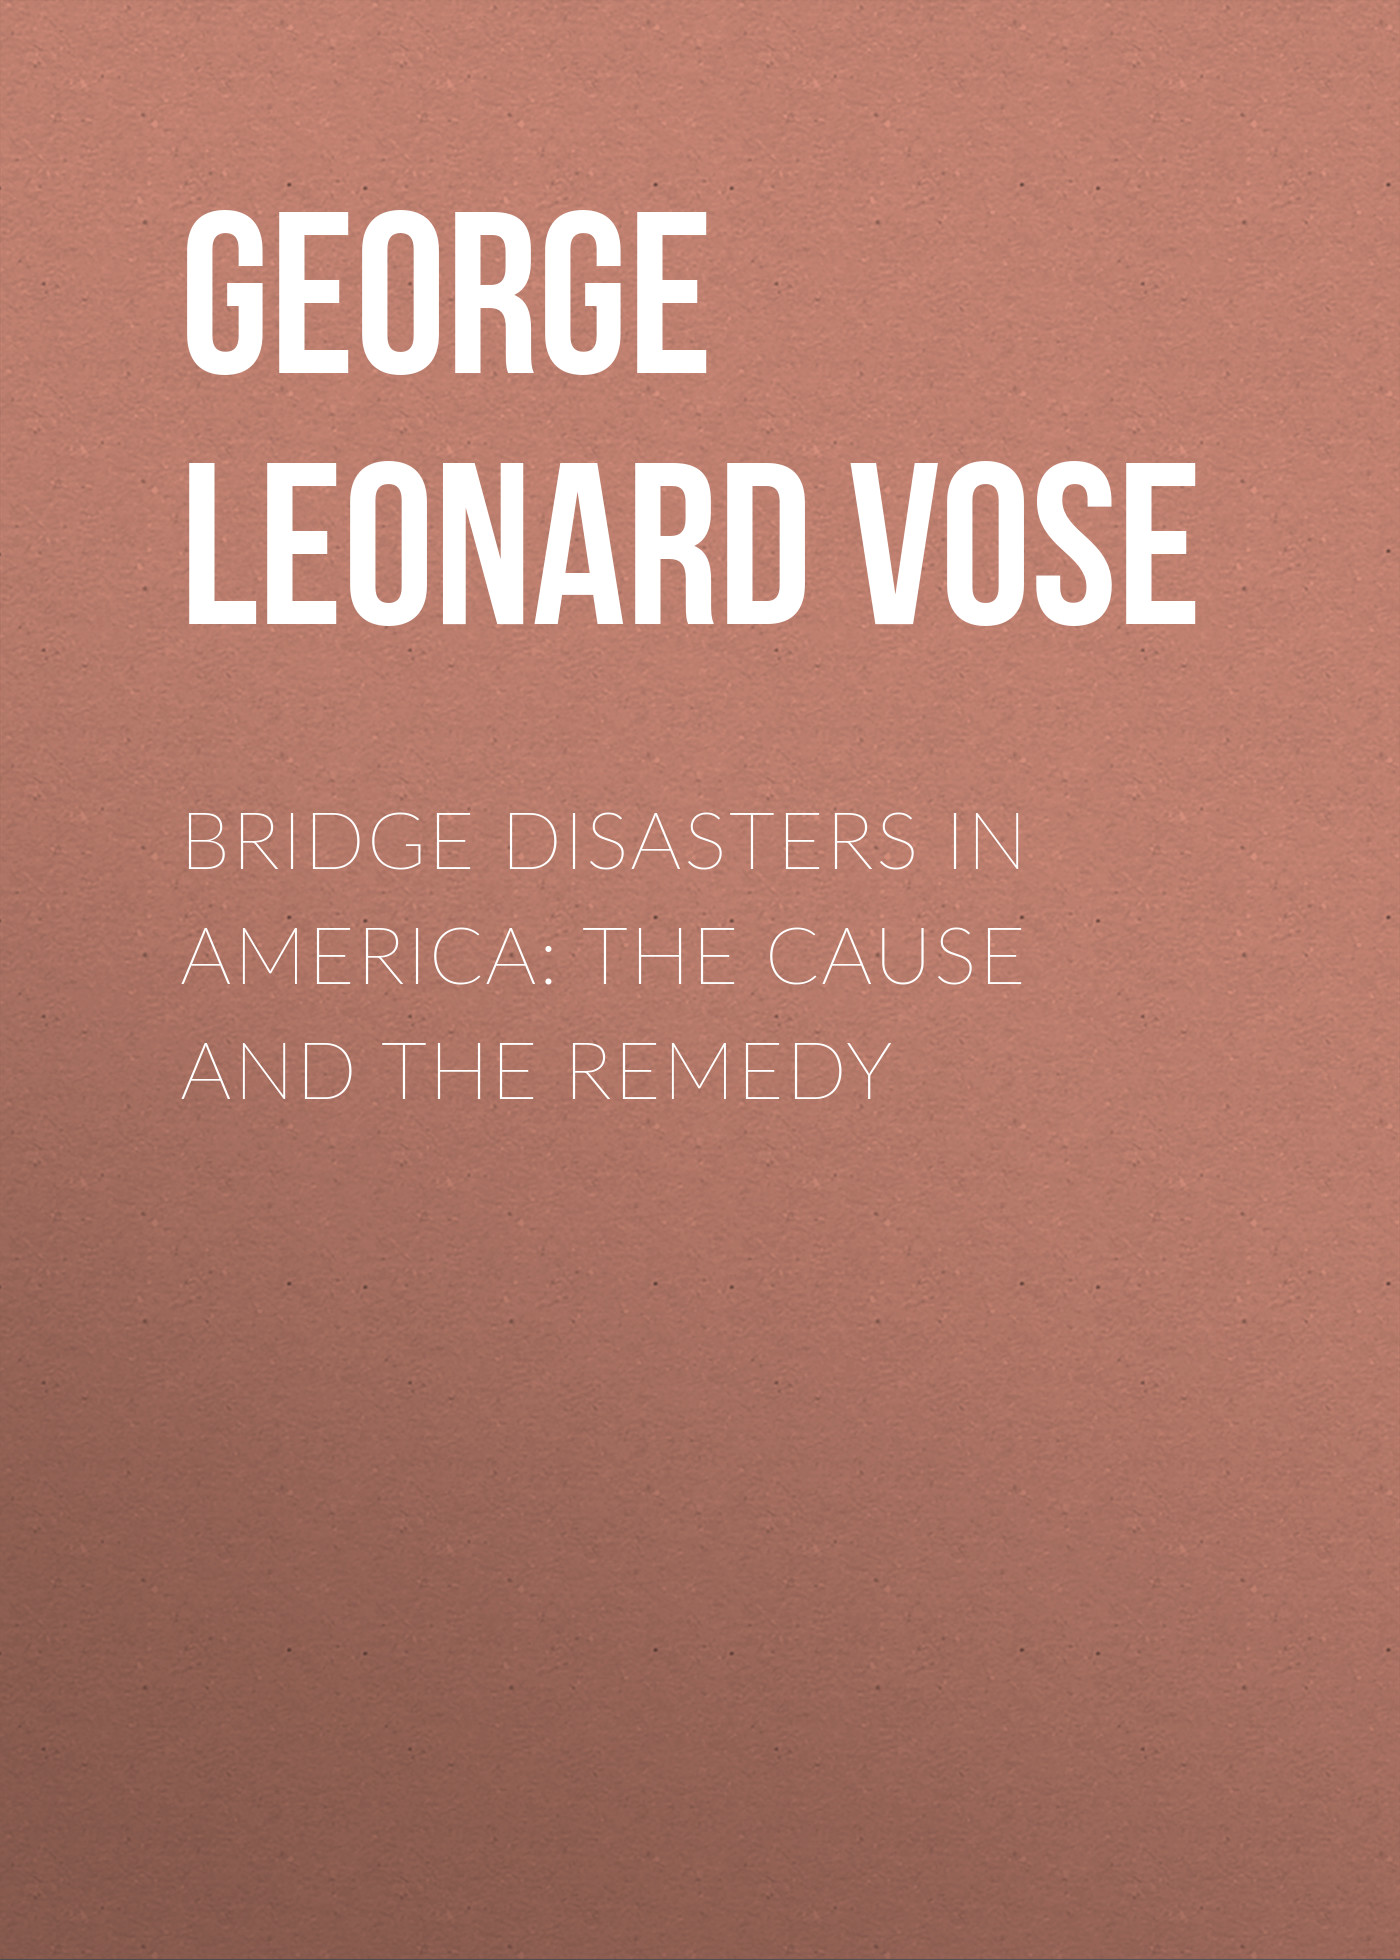 George Leonard Vose Bridge Disasters in America: The Cause and the Remedy